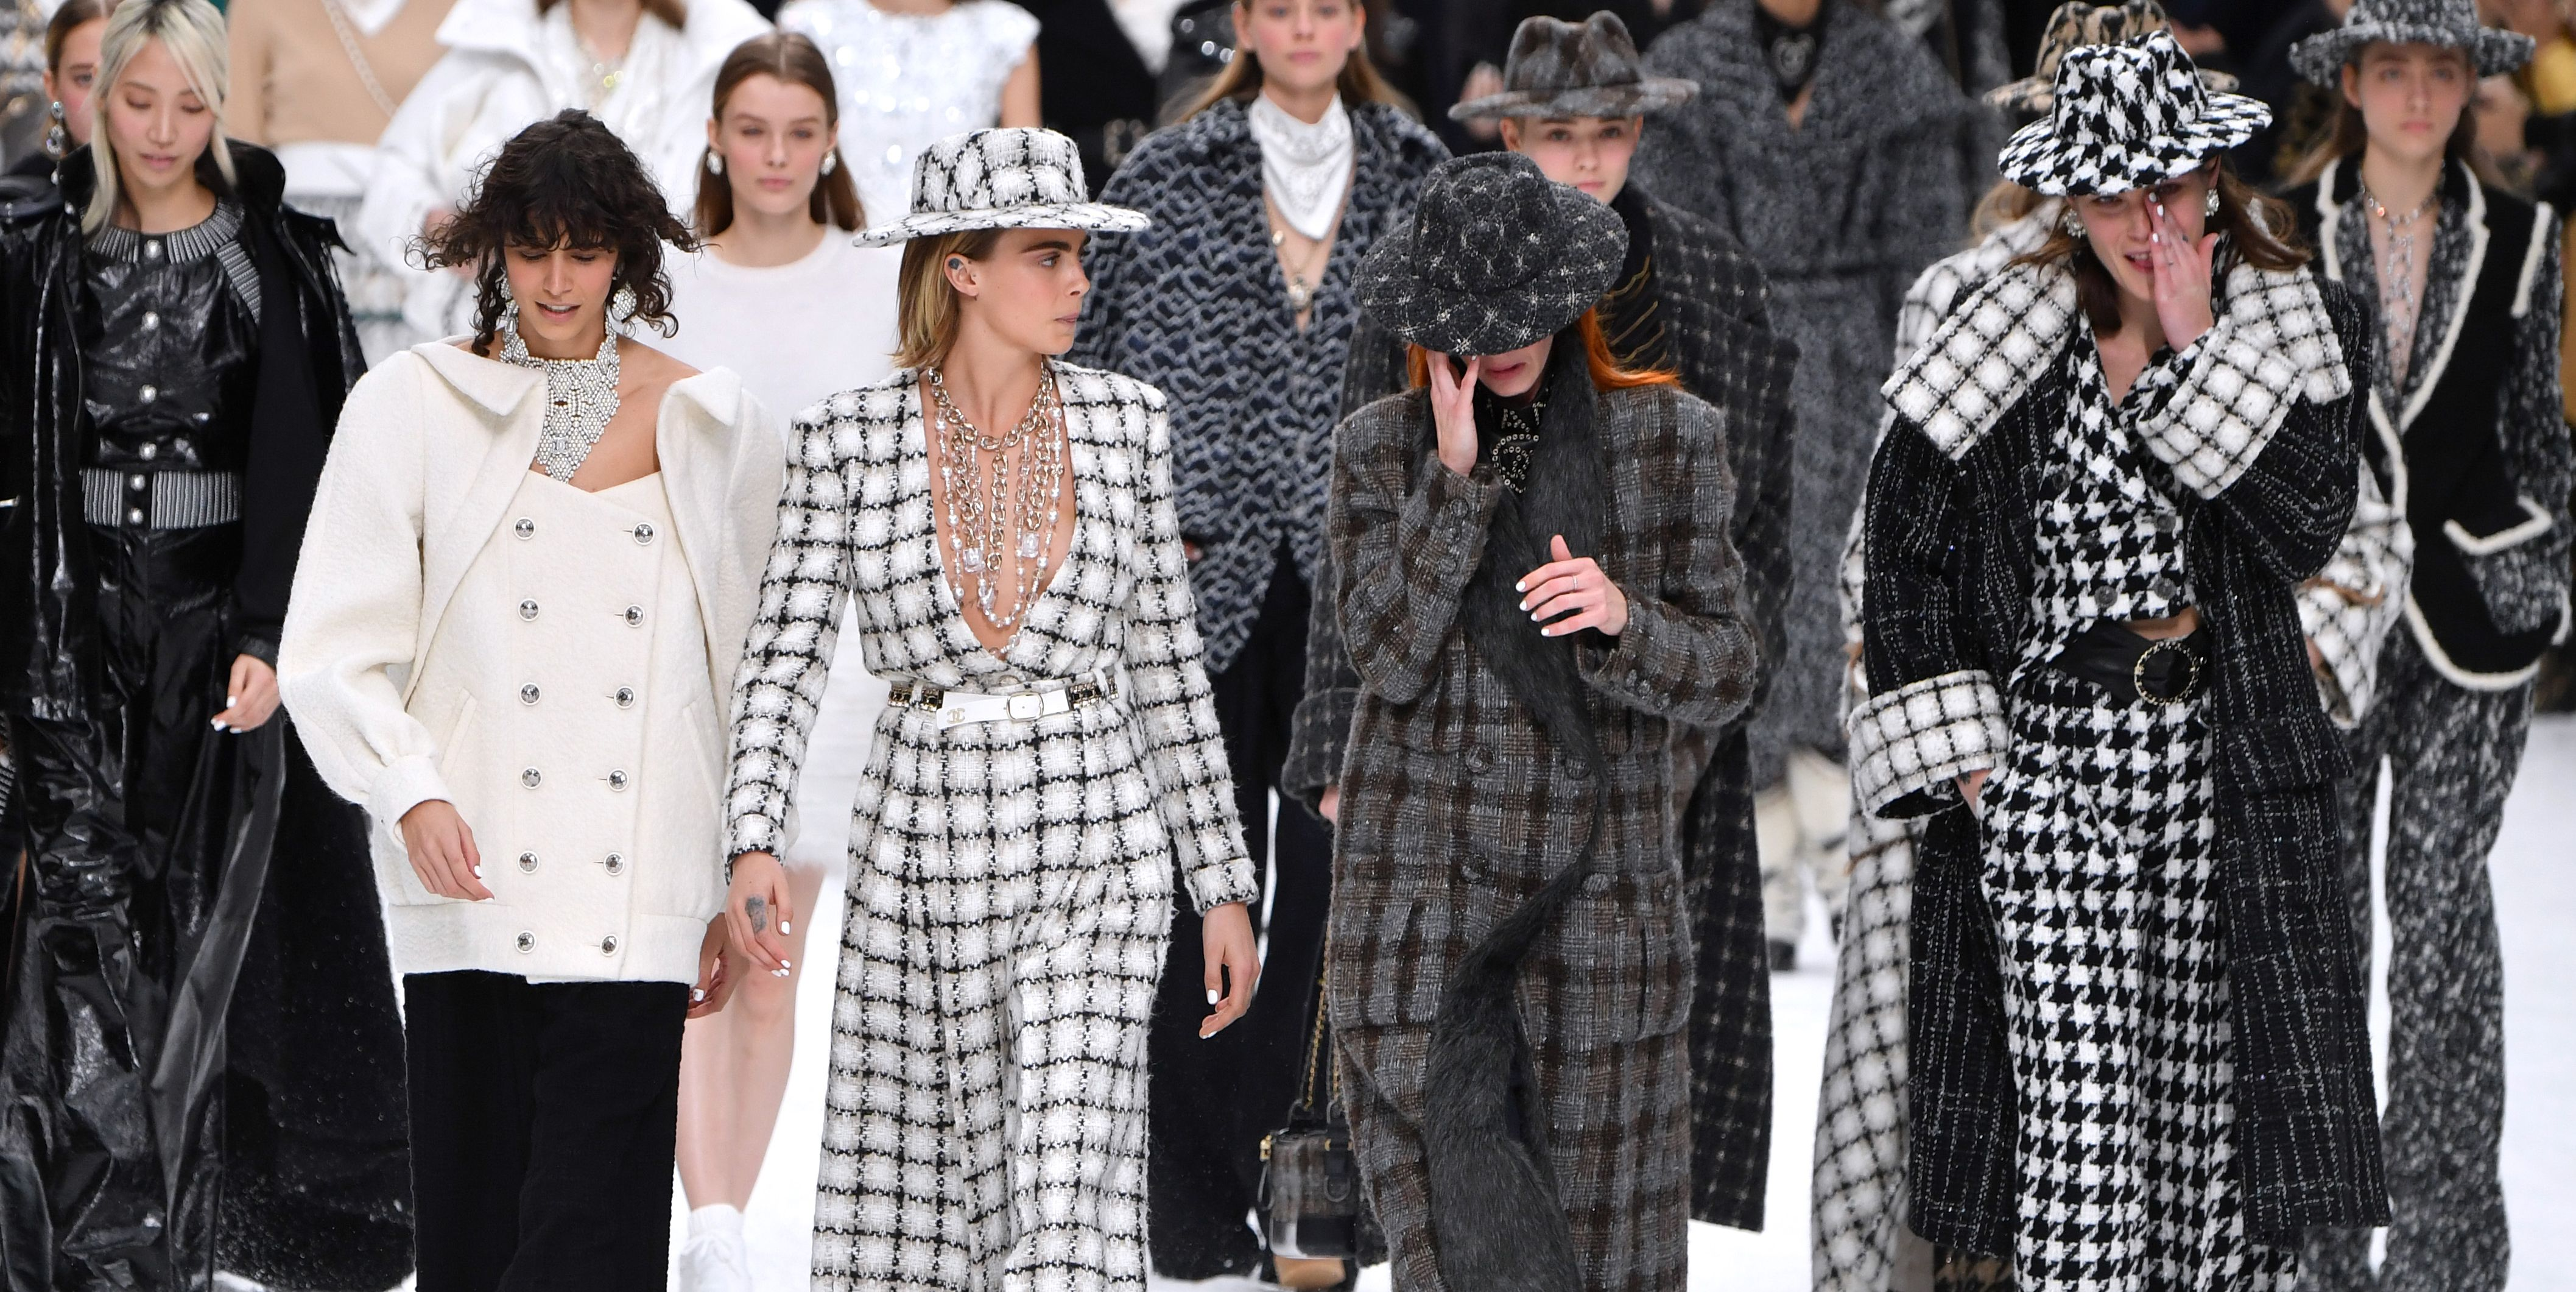 final chanel show aw19